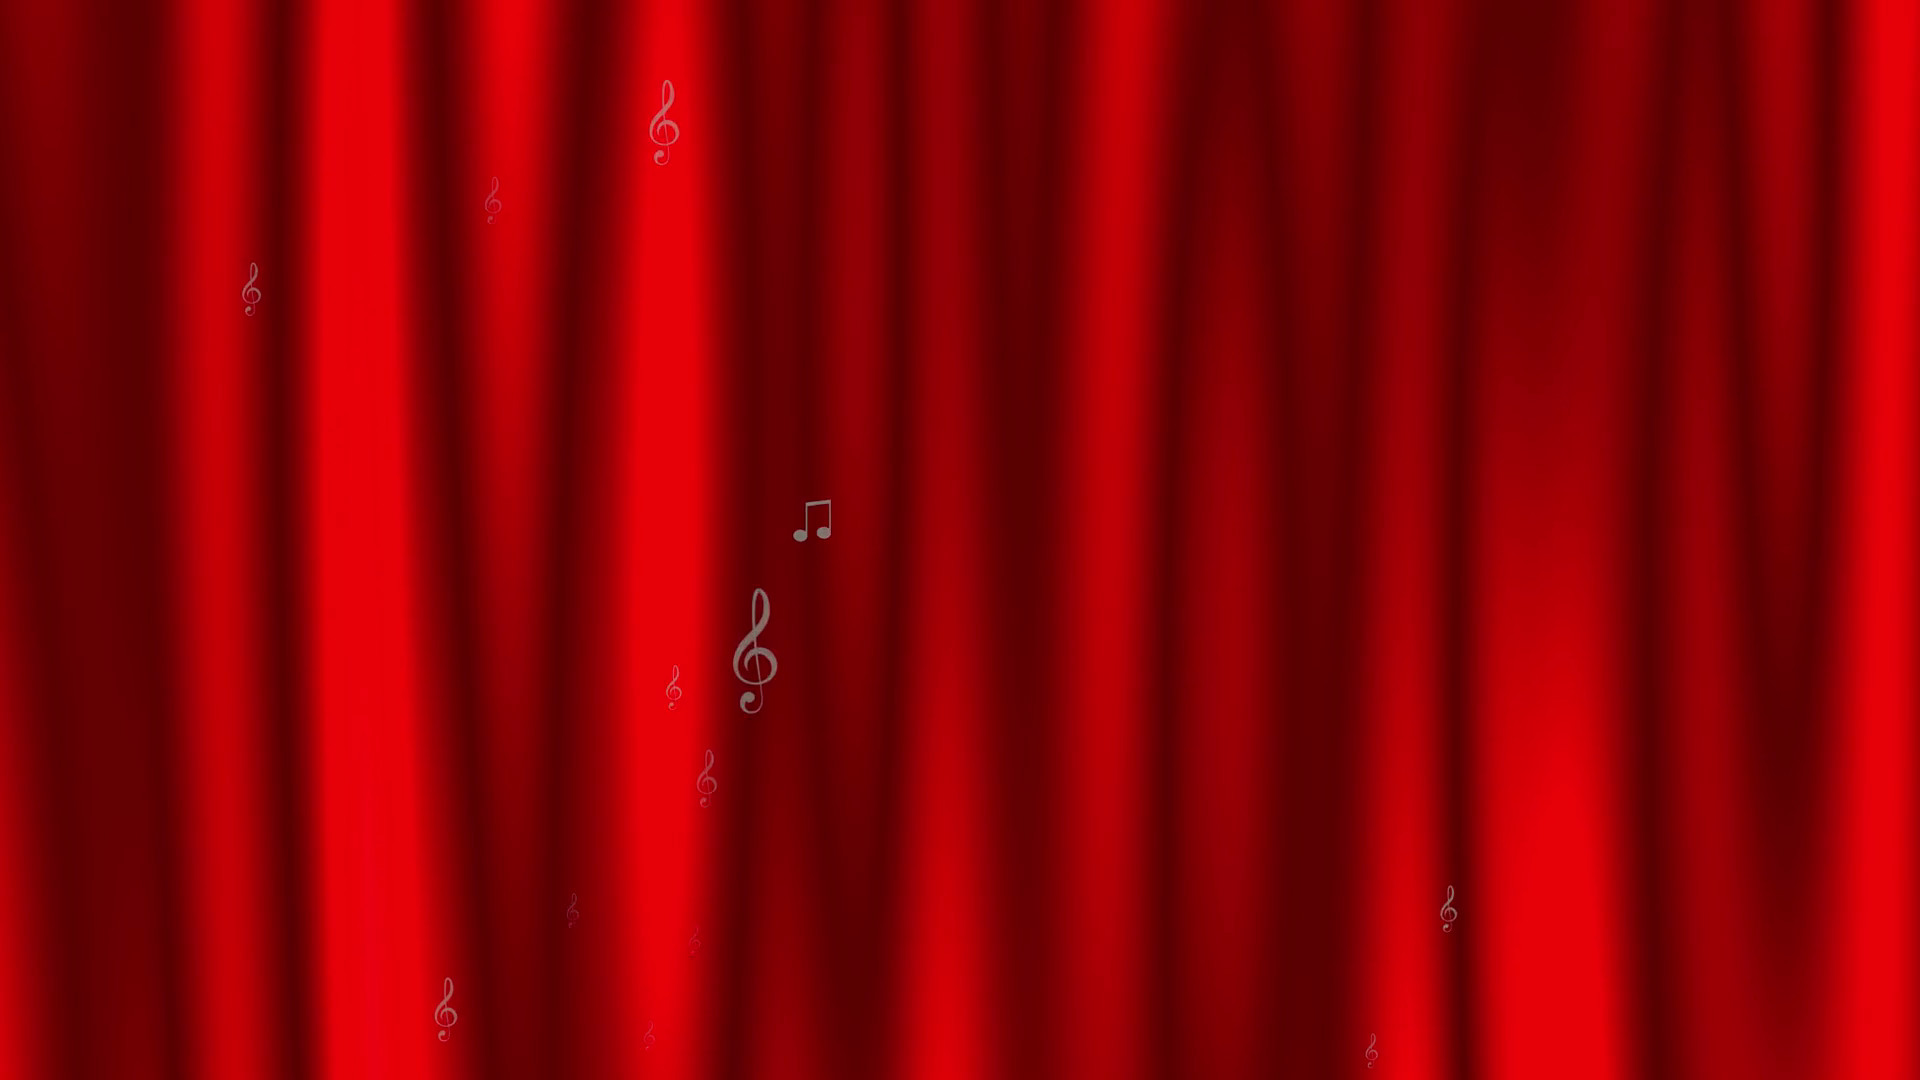 1920x1080 Animated dynamic background with music notes and marks on the background of  a stylized red theater curtain Motion Background - VideoBlocks